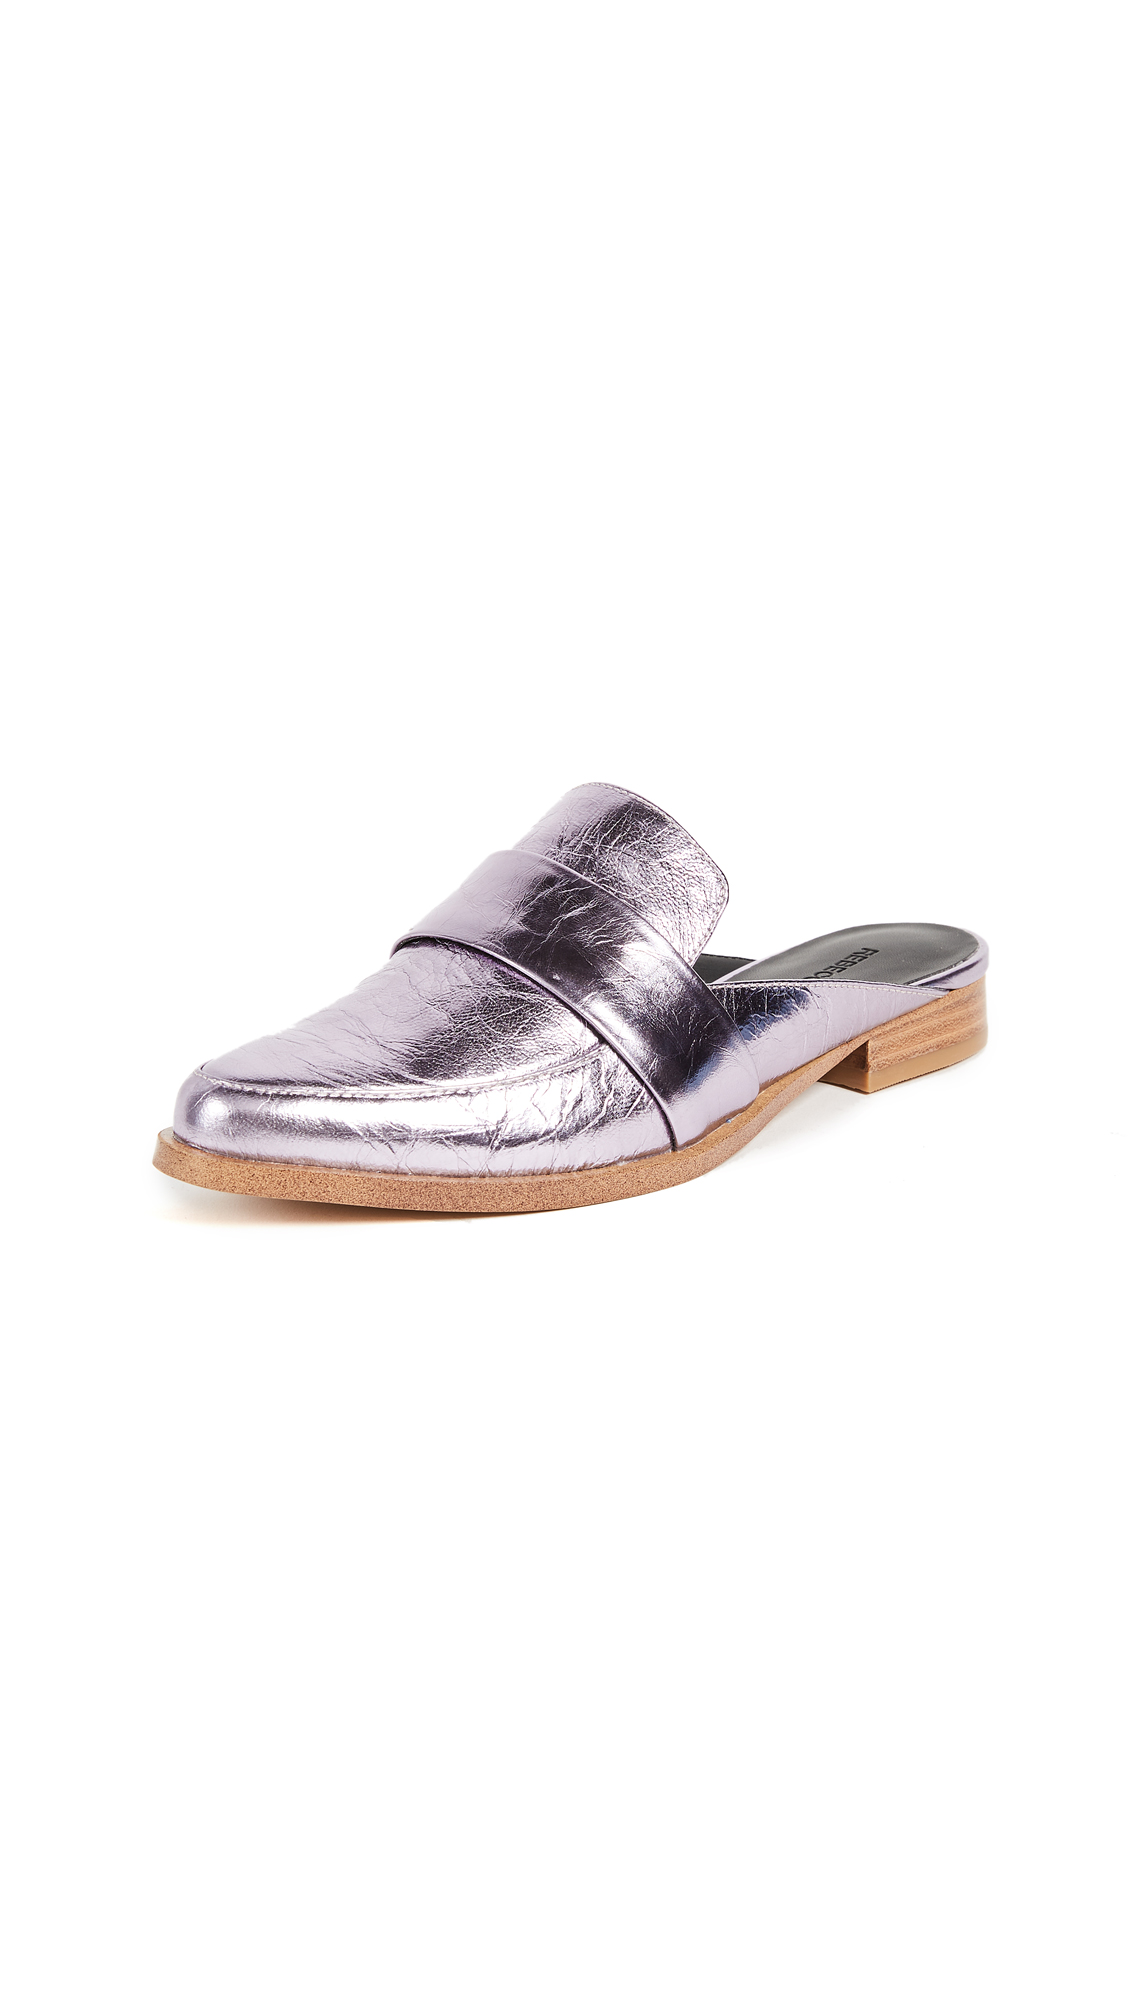 Rebecca Minkoff Mika Metallic Loafers - Pale Lilac